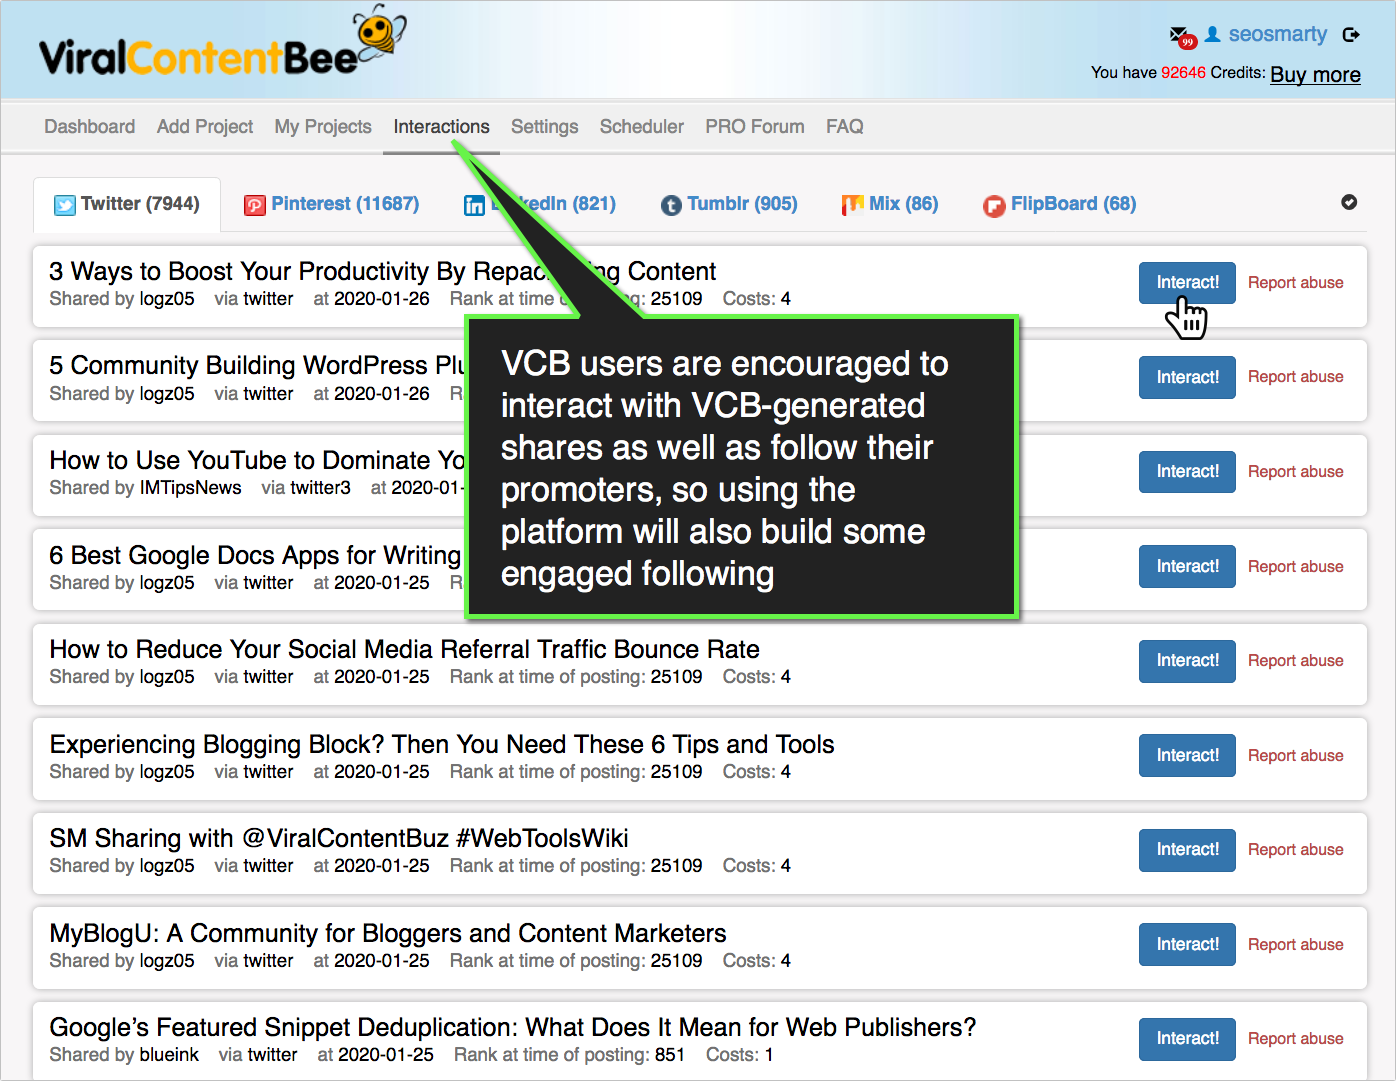 Twitter Conversions: 7 Steps to Generate More Clicks